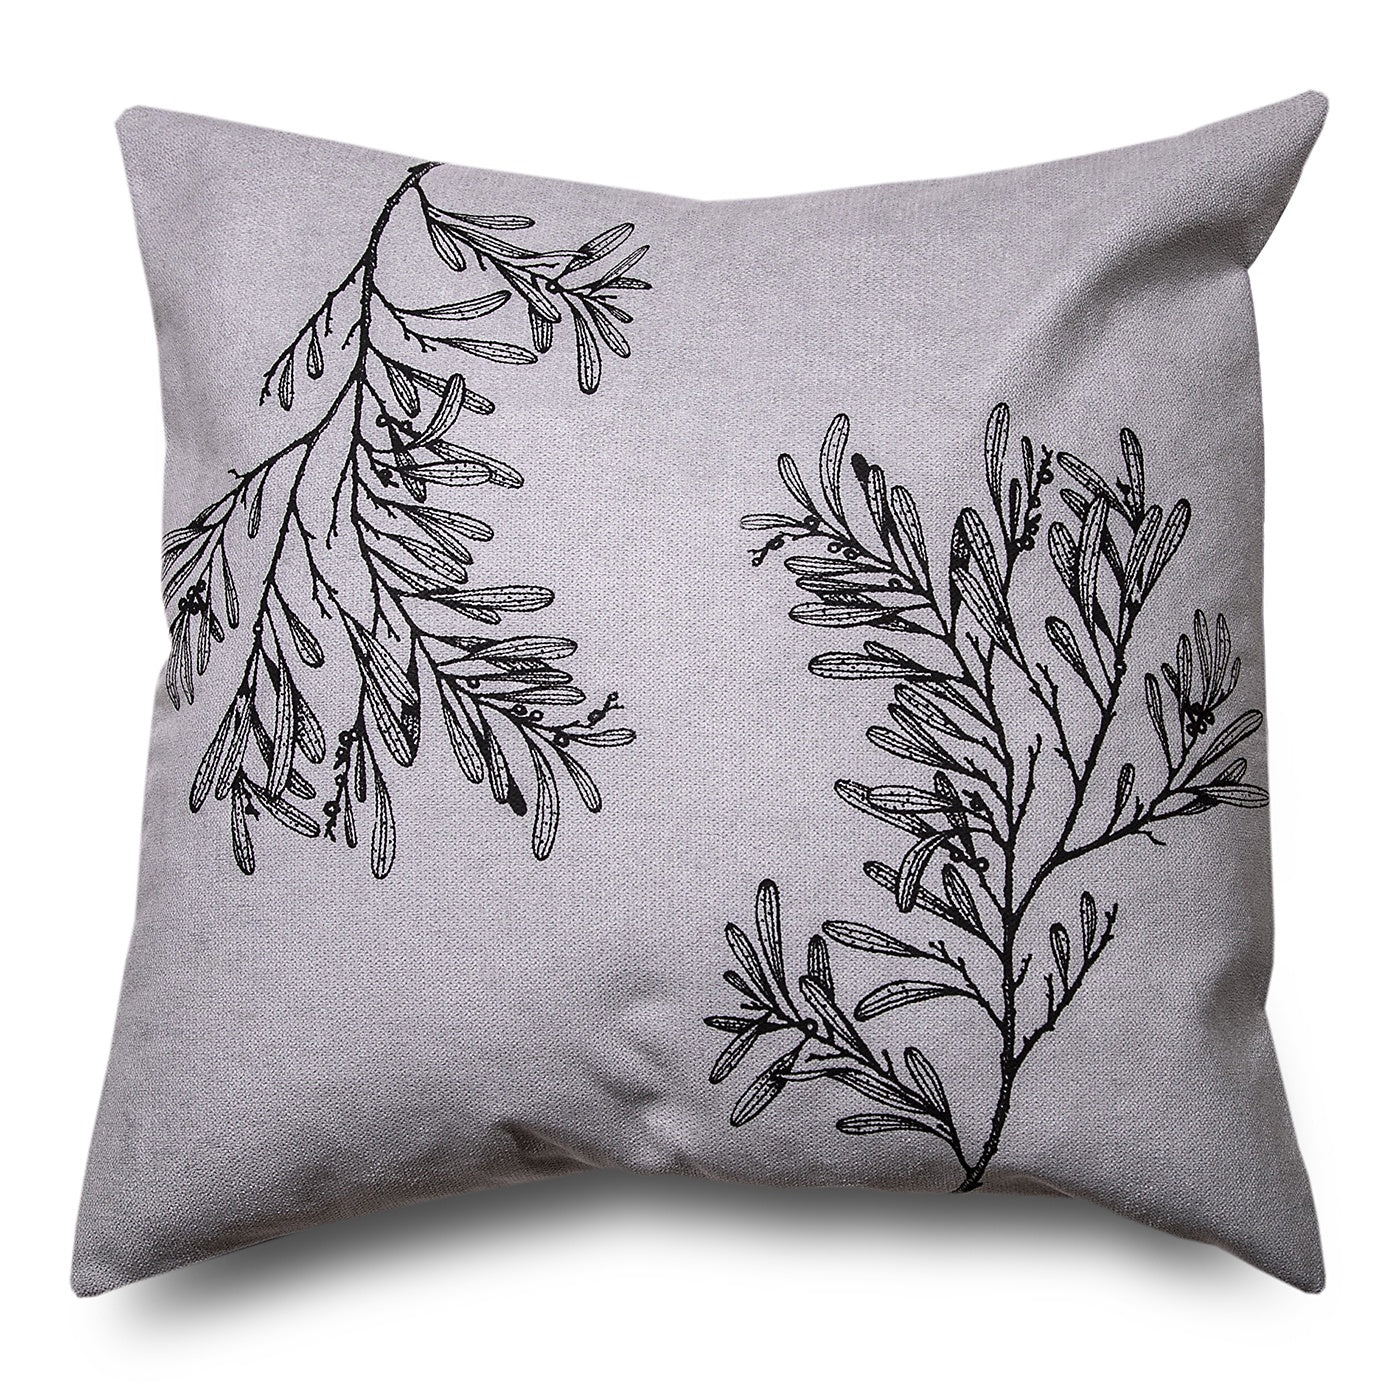 Stalley Textile Co. - Cushion Cover - Blackwood - Black on Light Grey